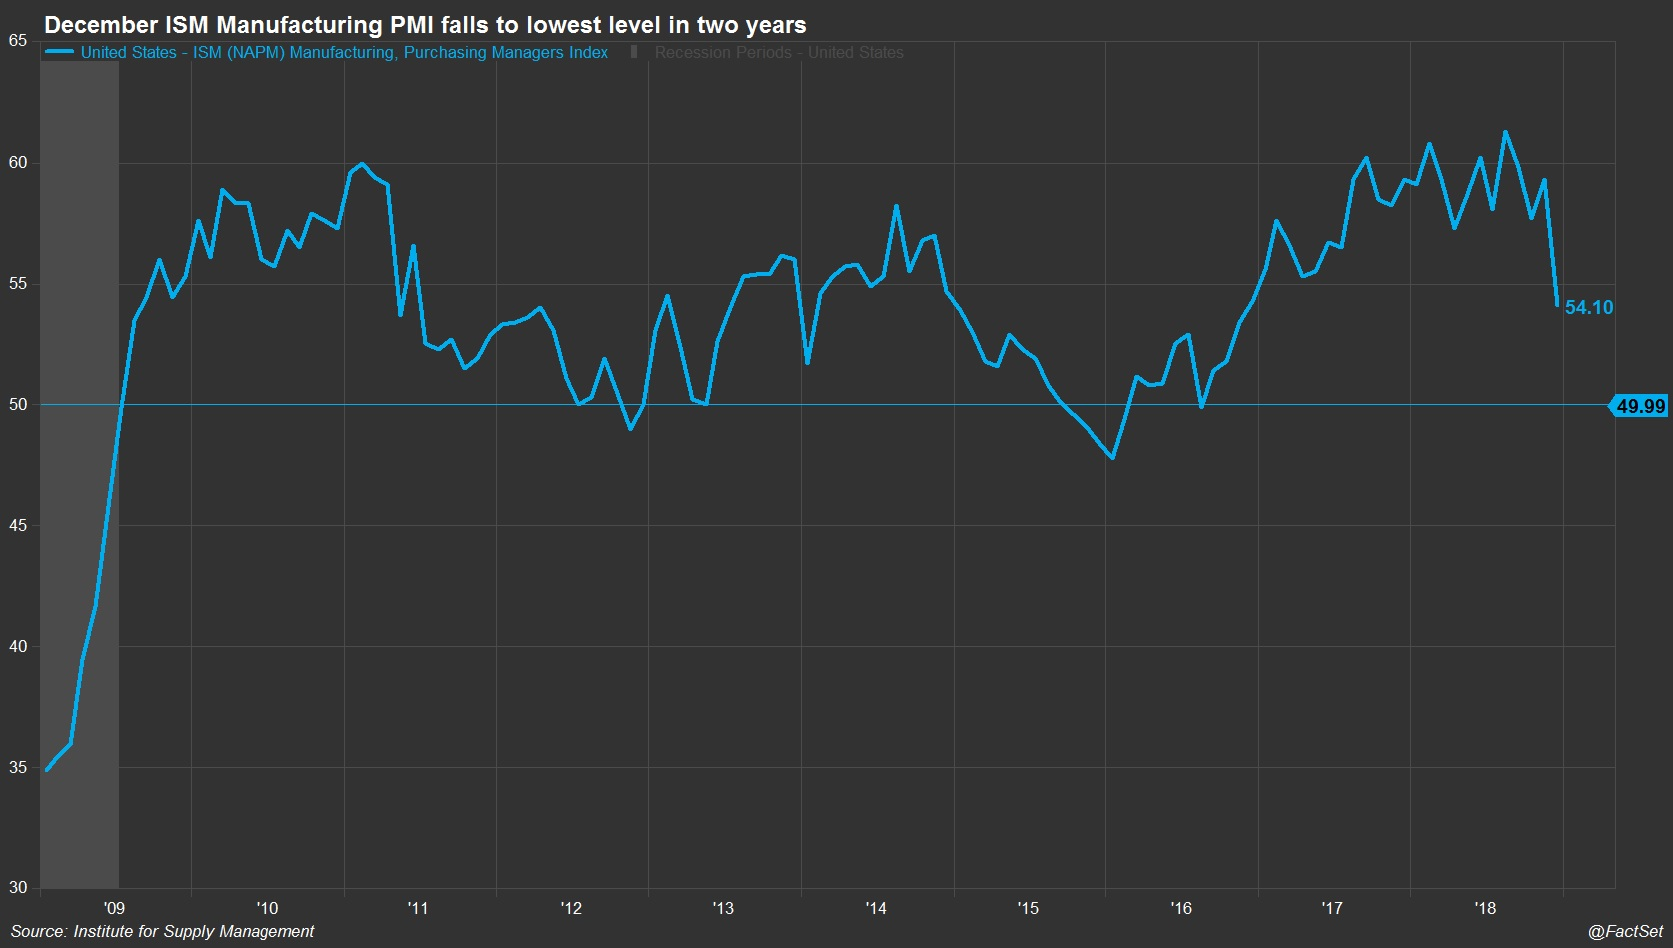 December ISM Manufacturing PMI falls to lowest level in two years